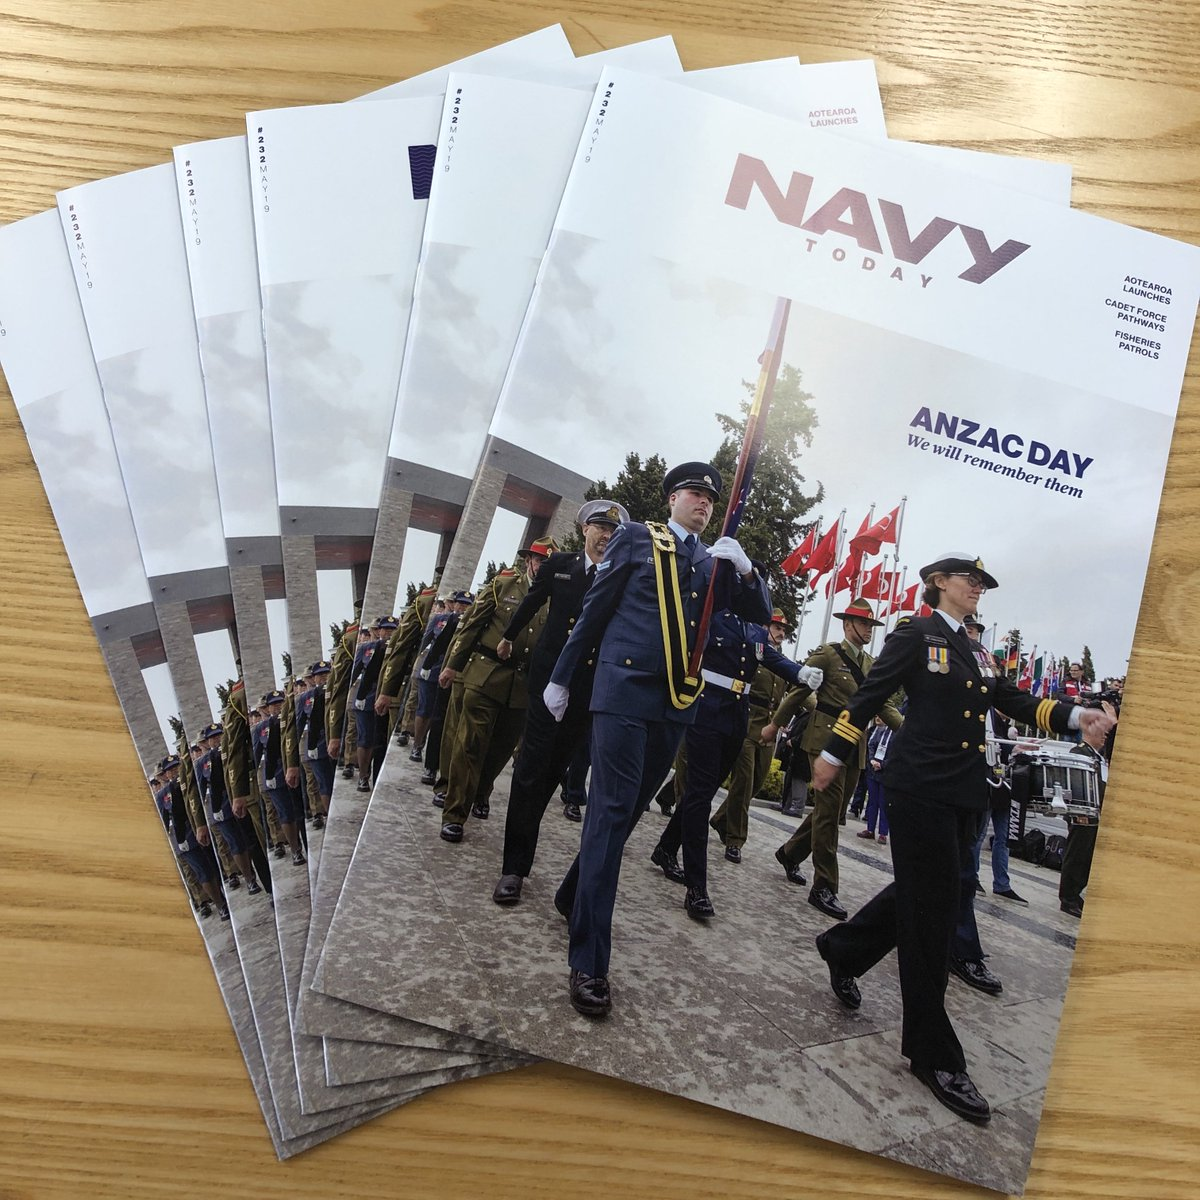 READ    Hot off the press, here's this month's Navy Today. Read about HMNZ Ships Otago and Wellington sharing fisheries patrols, check out Aotearoas launch in Korea, our best selection of Anzac Day images and more! MORE: bit.ly/navytoday232 #NZNavy